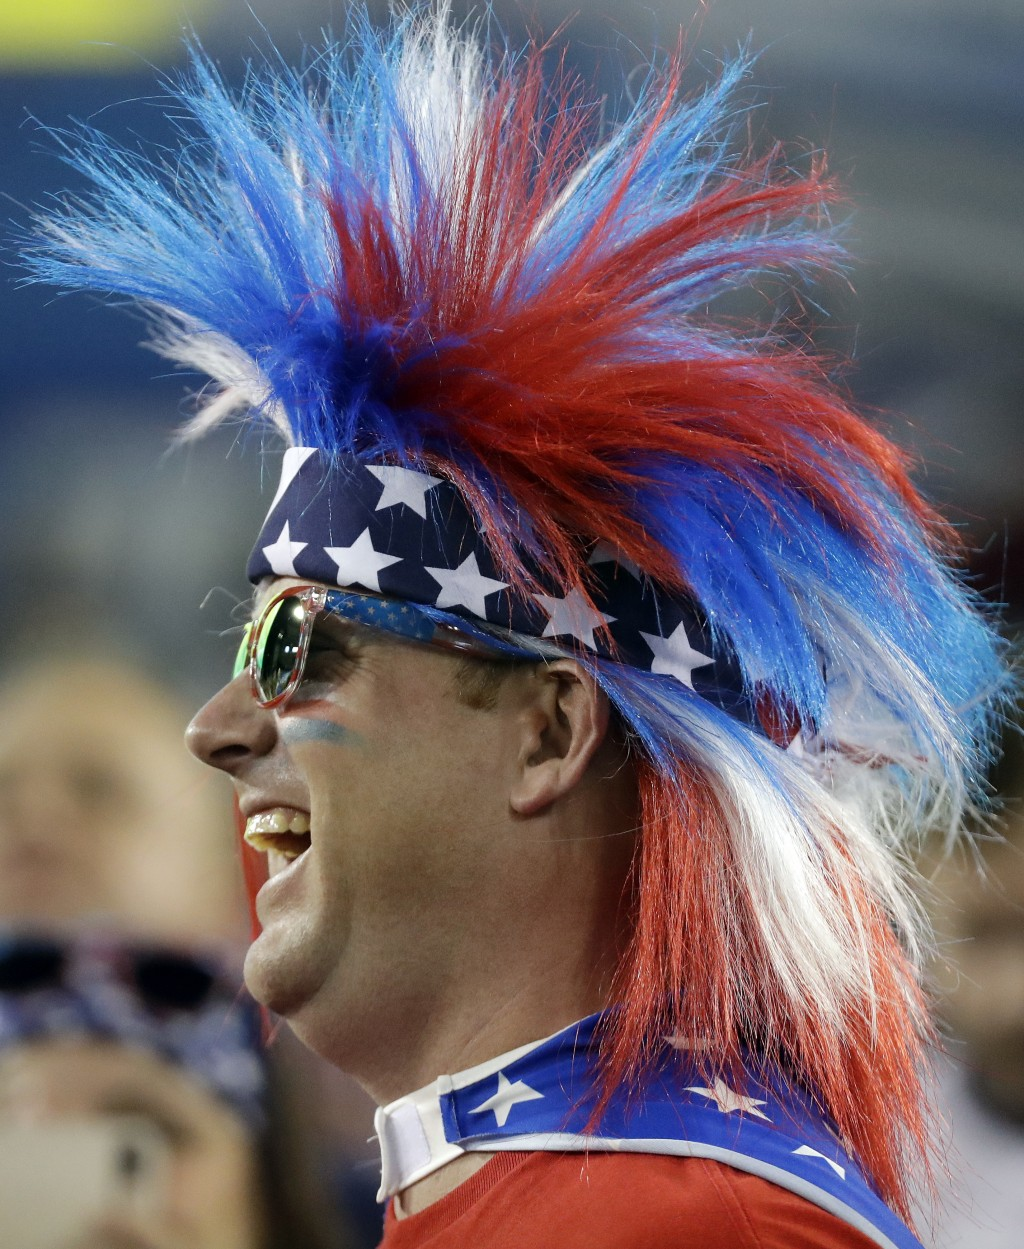 A fan of the U.S. men's national soccer team team cheers during an international friendly match against Mexico, Tuesday, Sept. 11, 2018, in Nashville,